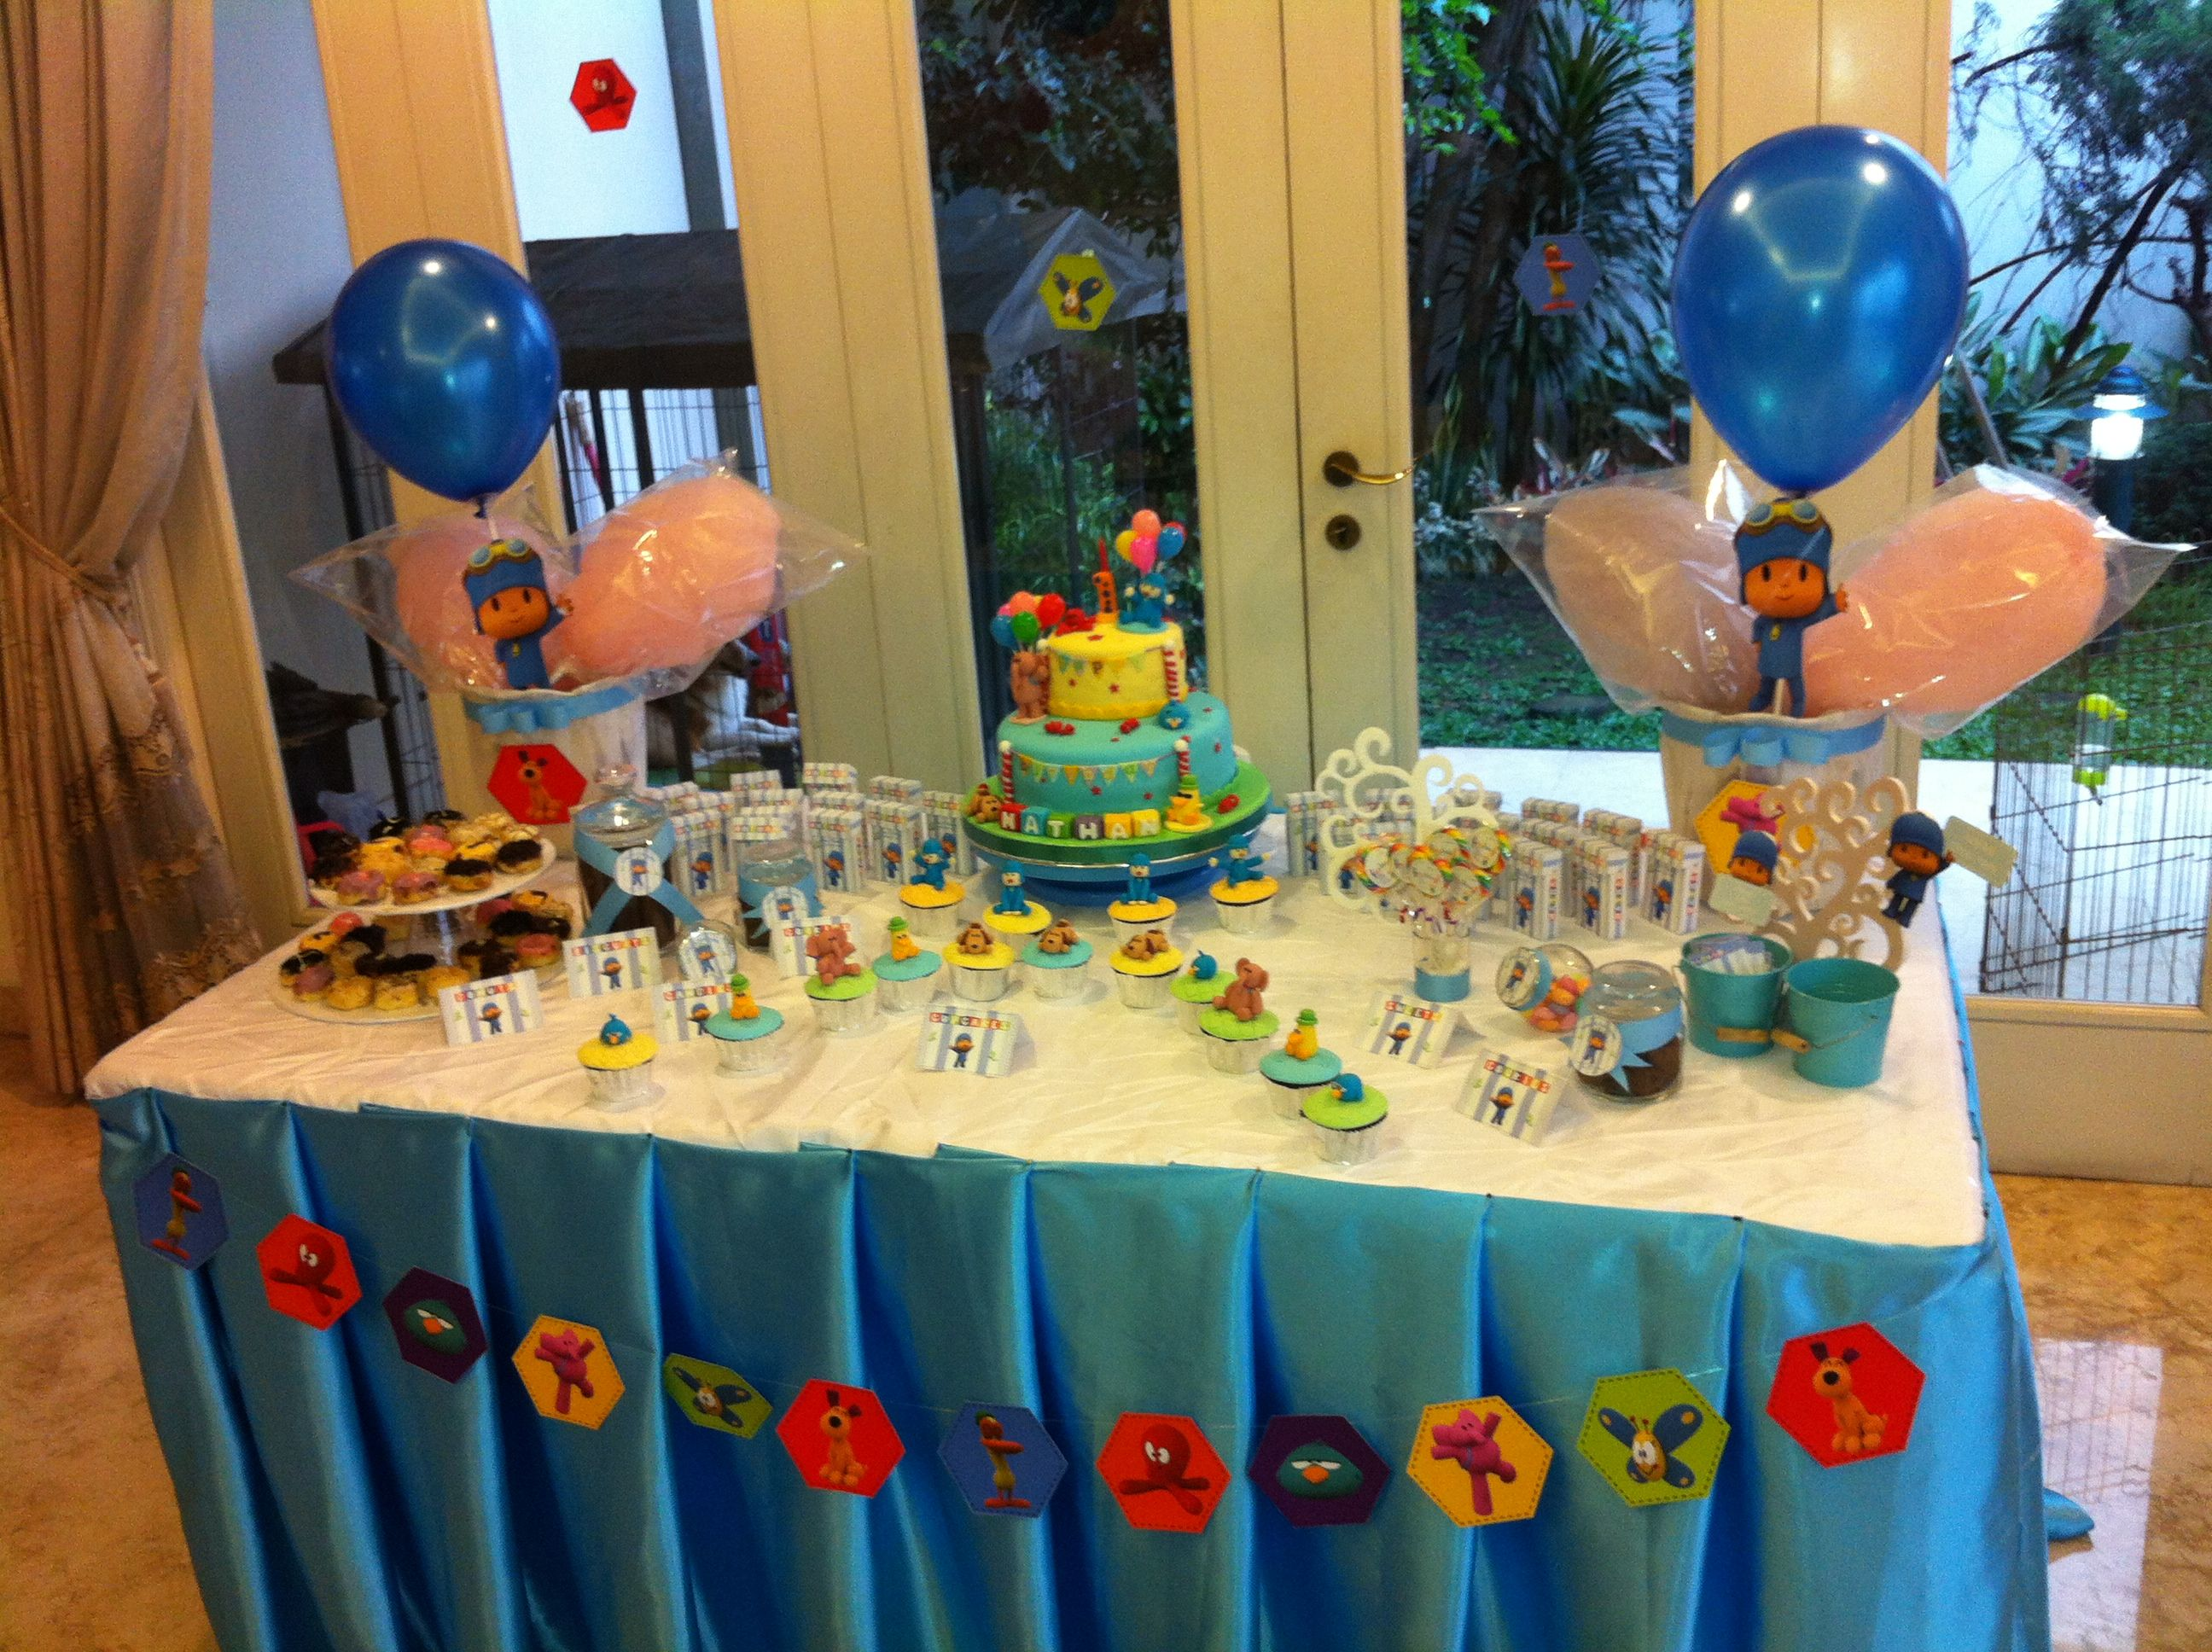 Decoraciones De Fiestas Infantiles Pocoyo Party Decor Idea6 2nd Birthday Pocoyo Party Ideas